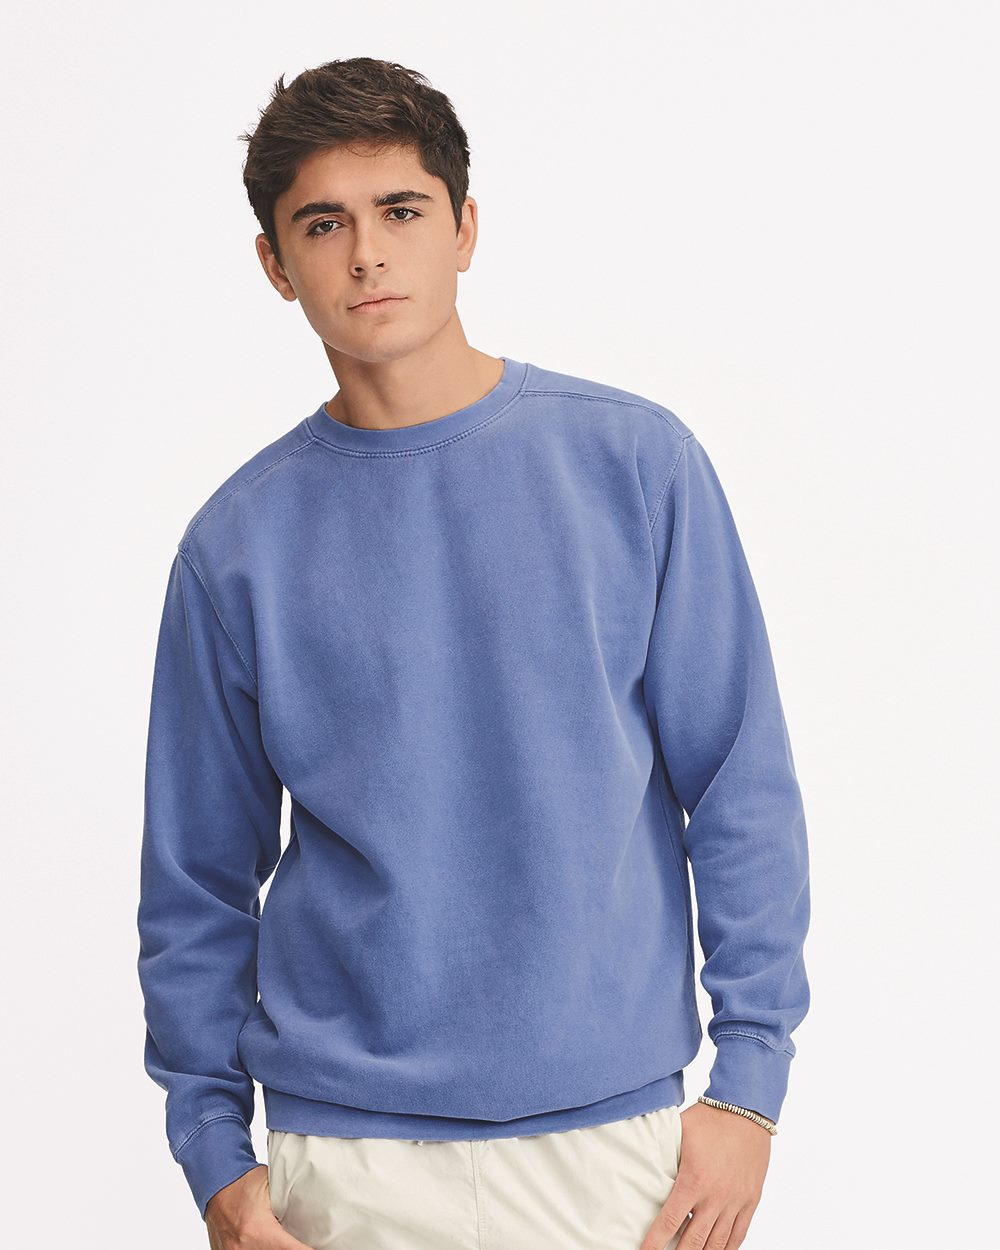 Comfort Colors 1566 Garment Dyed Ringspun Crewneck